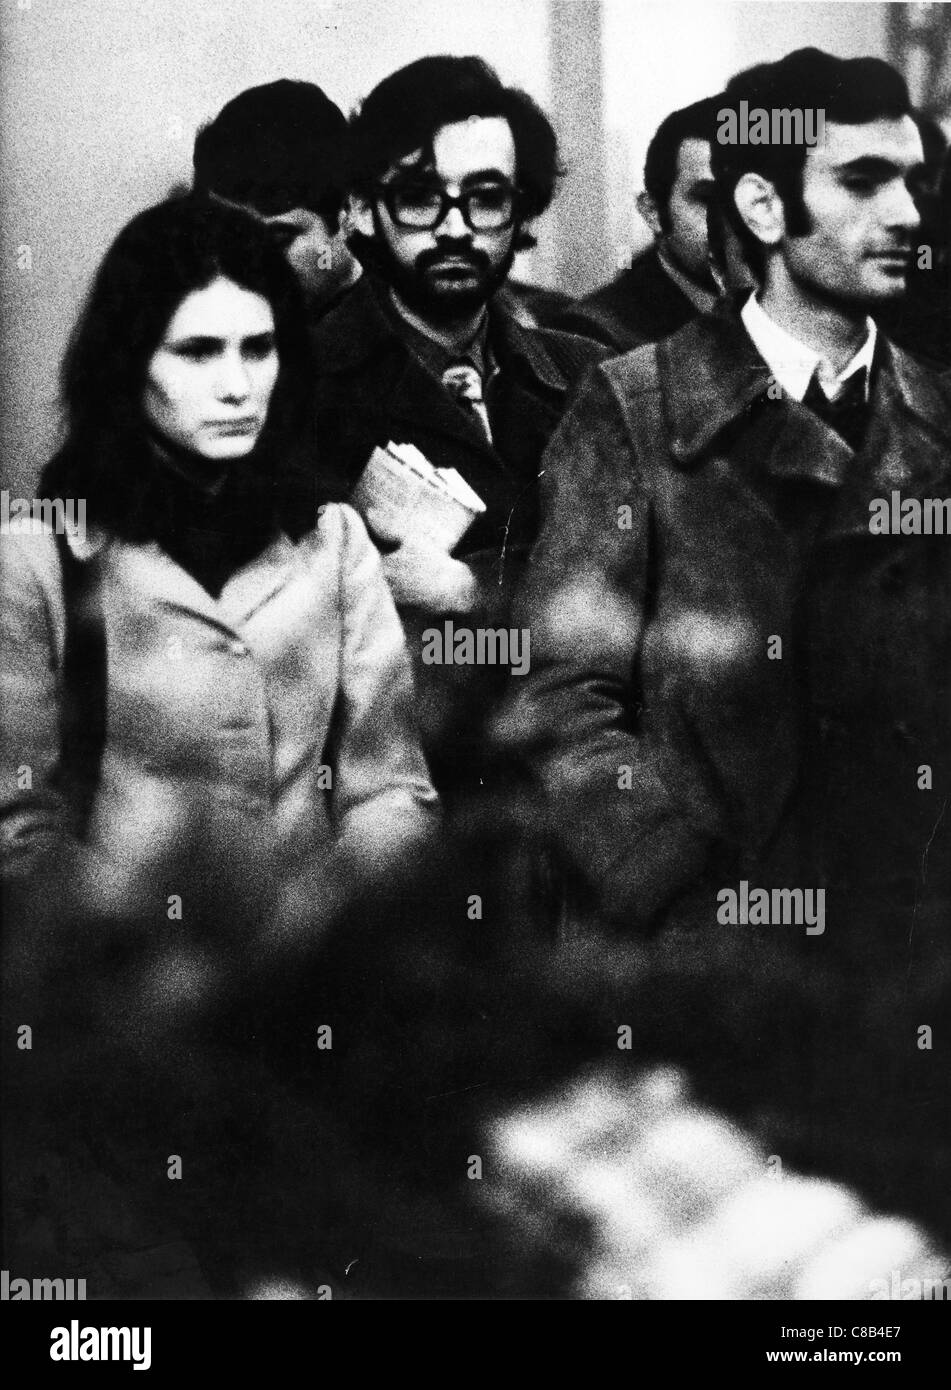 Oreste Scalzone at the funeral of Feltrinelli,1972 - Stock Image